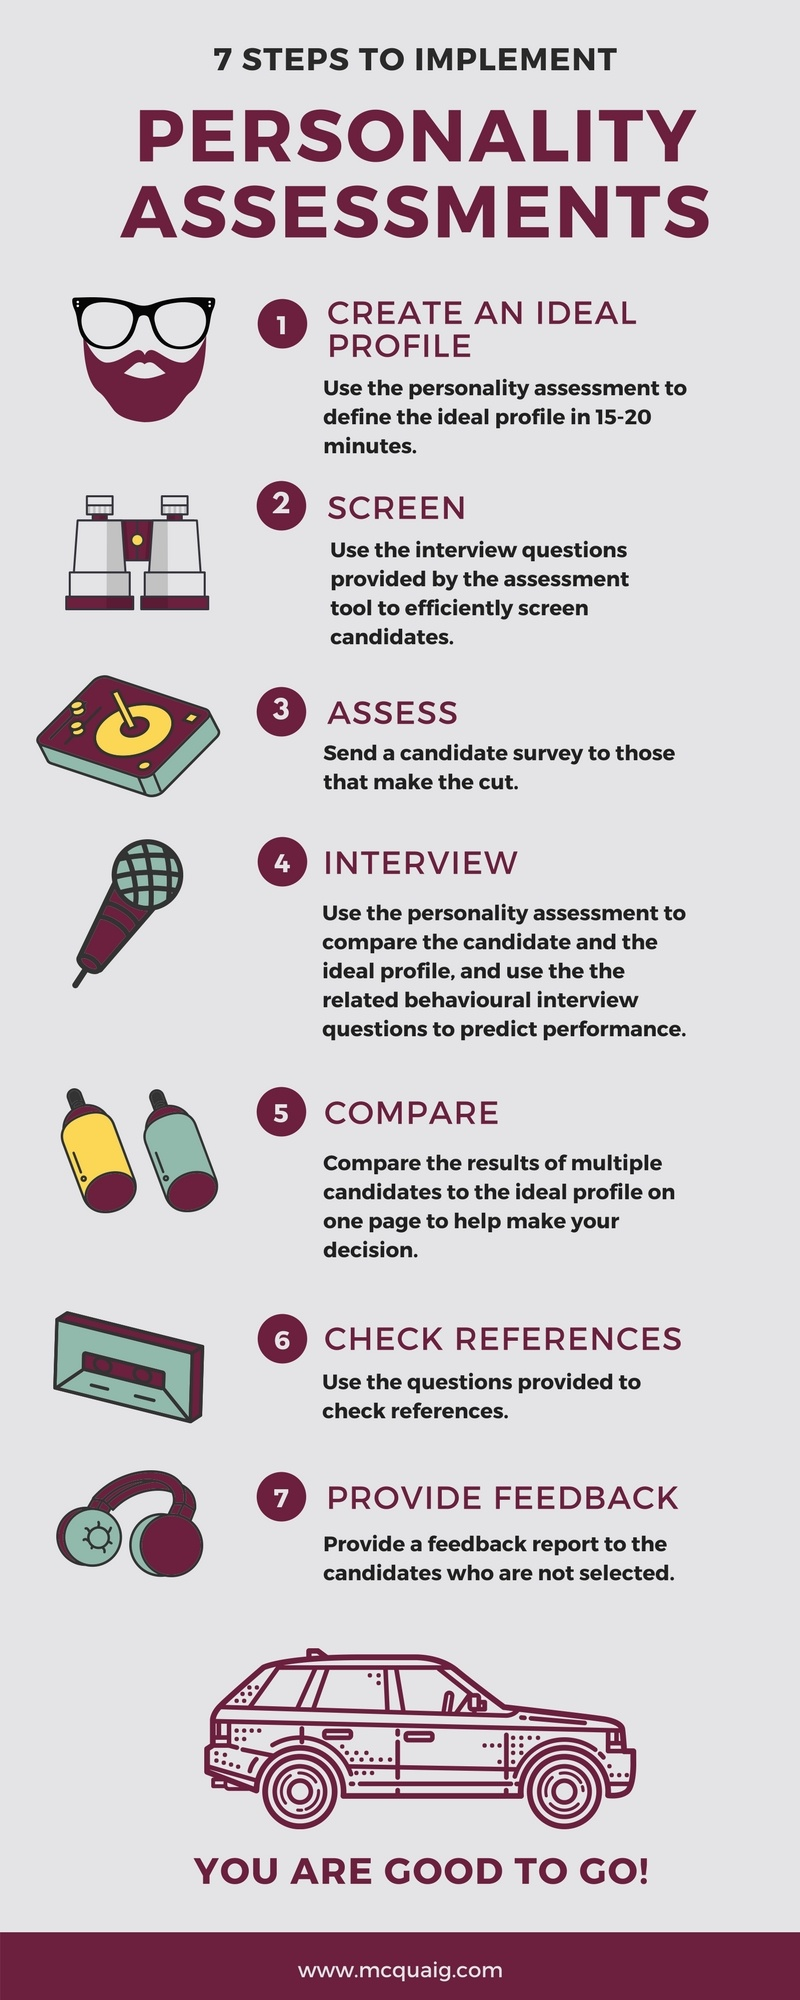 7 Steps to Personality Assessments V2.jpg